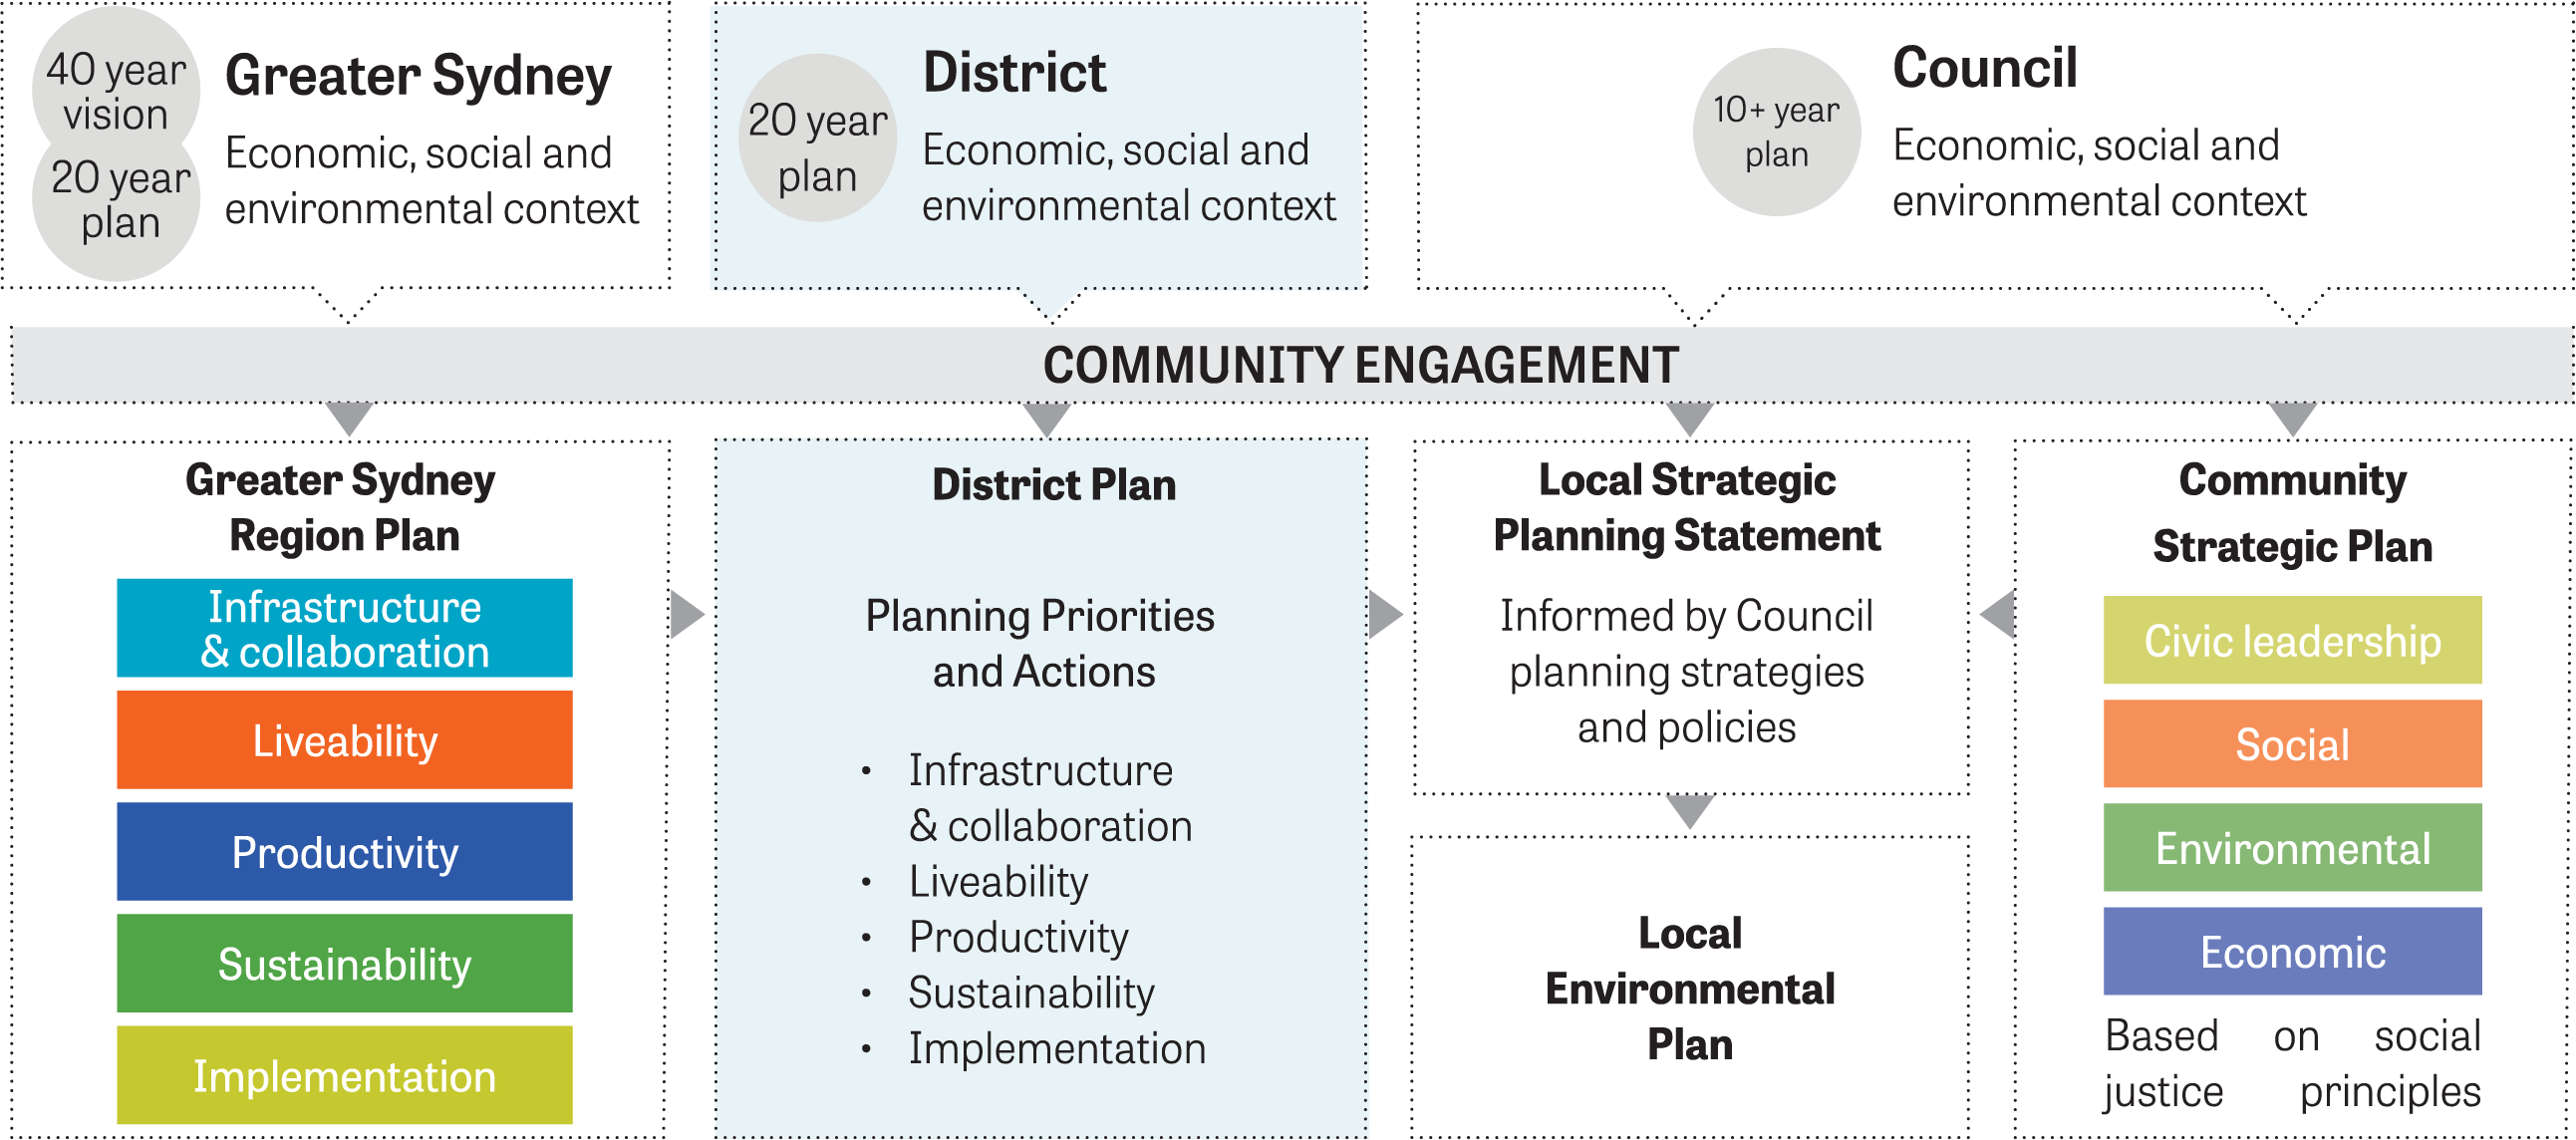 Diagram showing Relationship between regional, district and local plans.